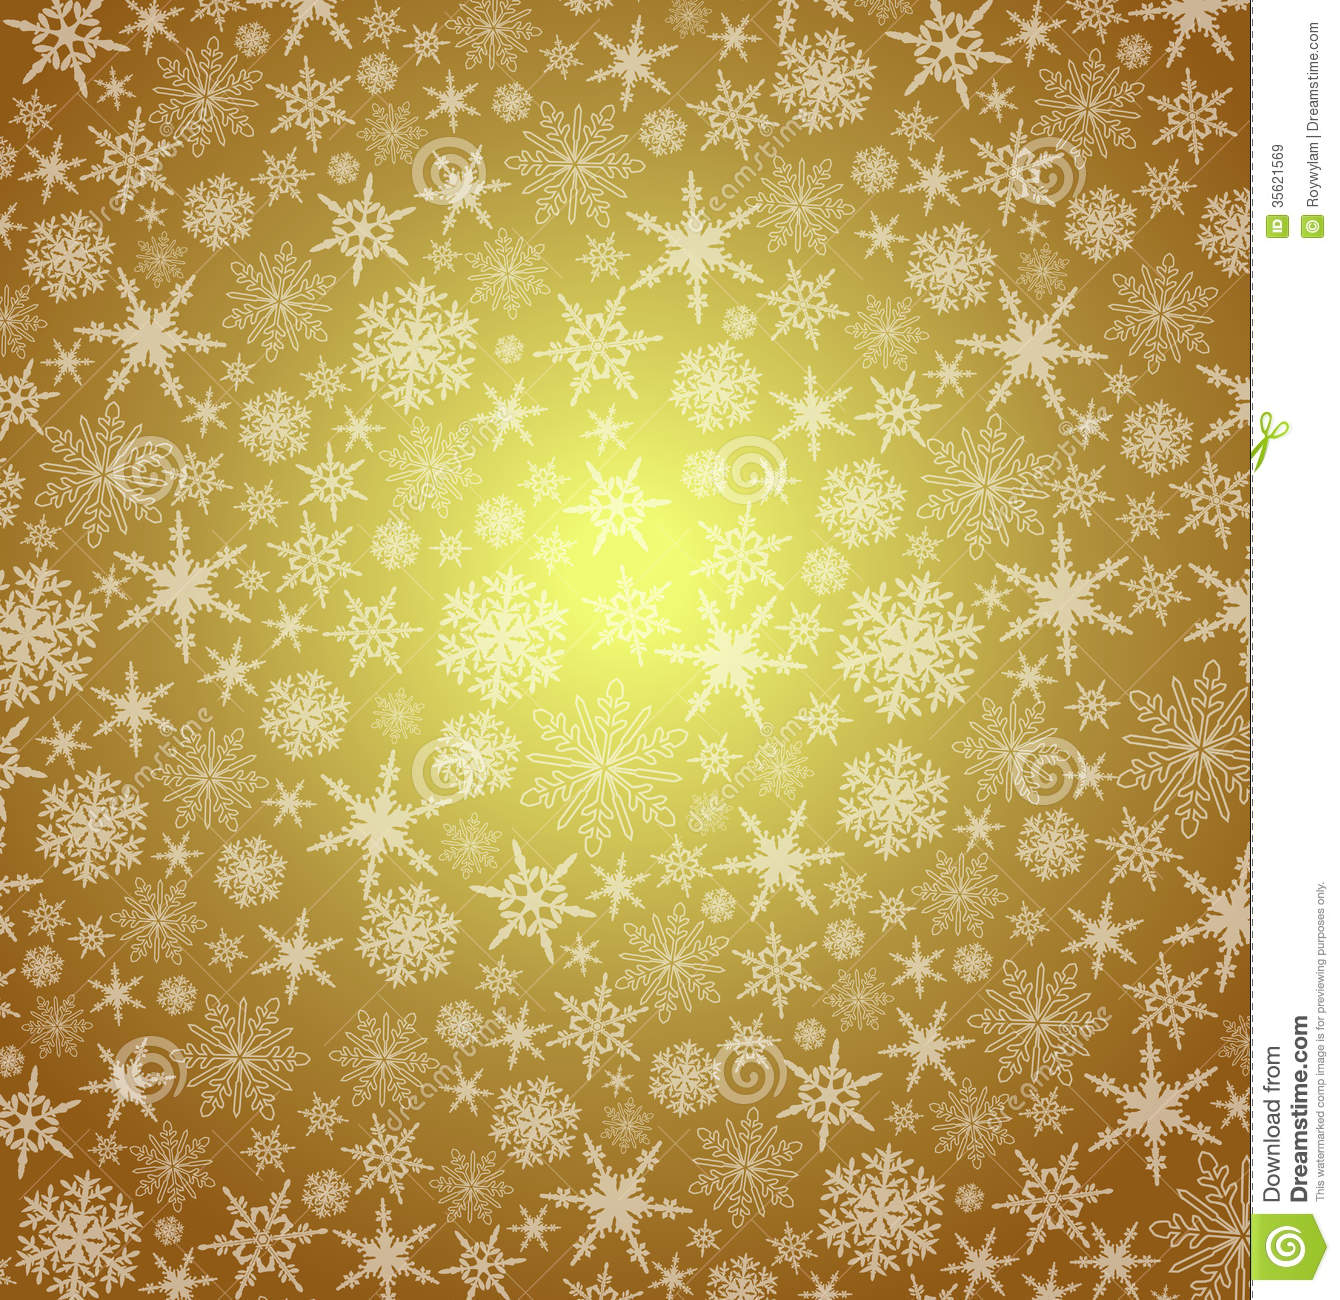 gold christmas snowflake wallpaper - photo #12